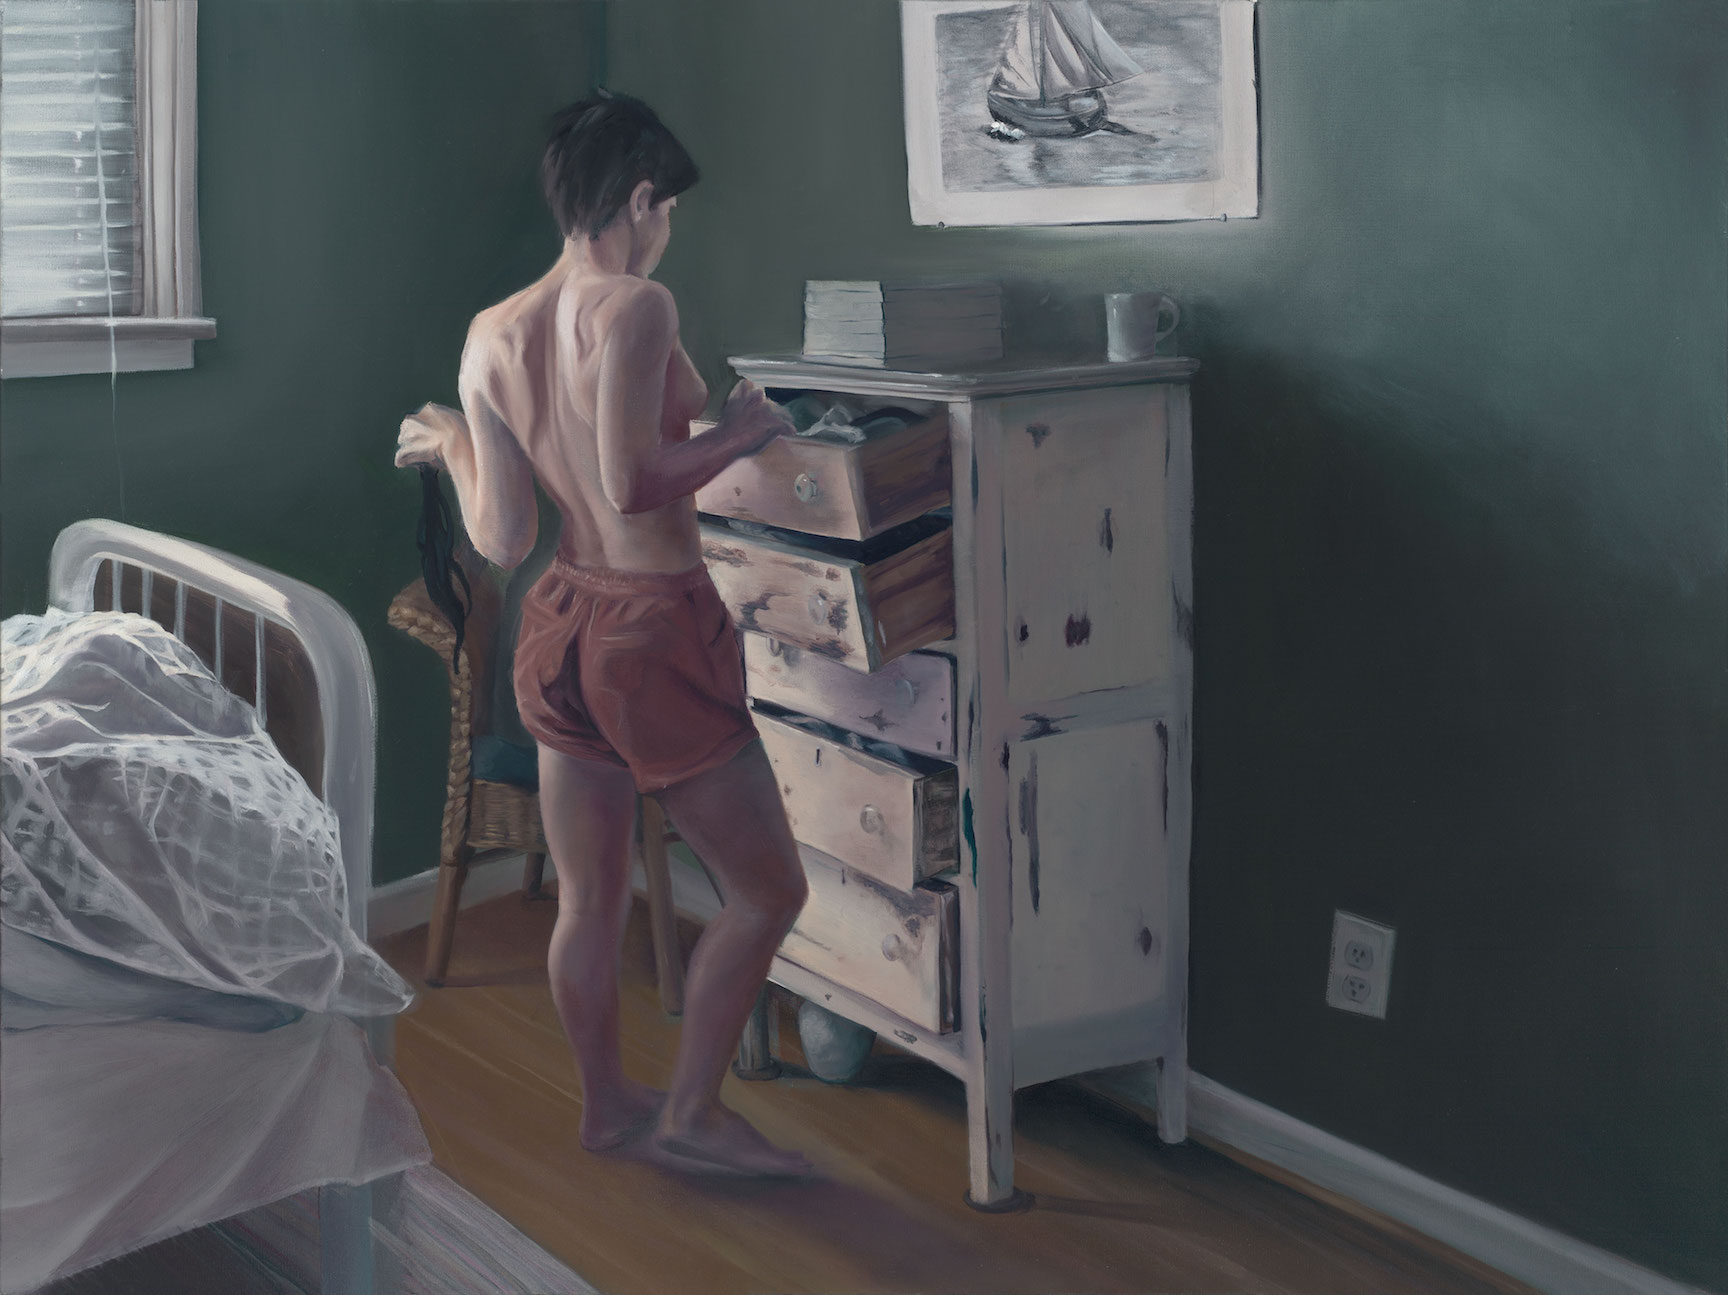 Getting Dressed, 48 x 36 inches, Oil on Canvas, May 2017